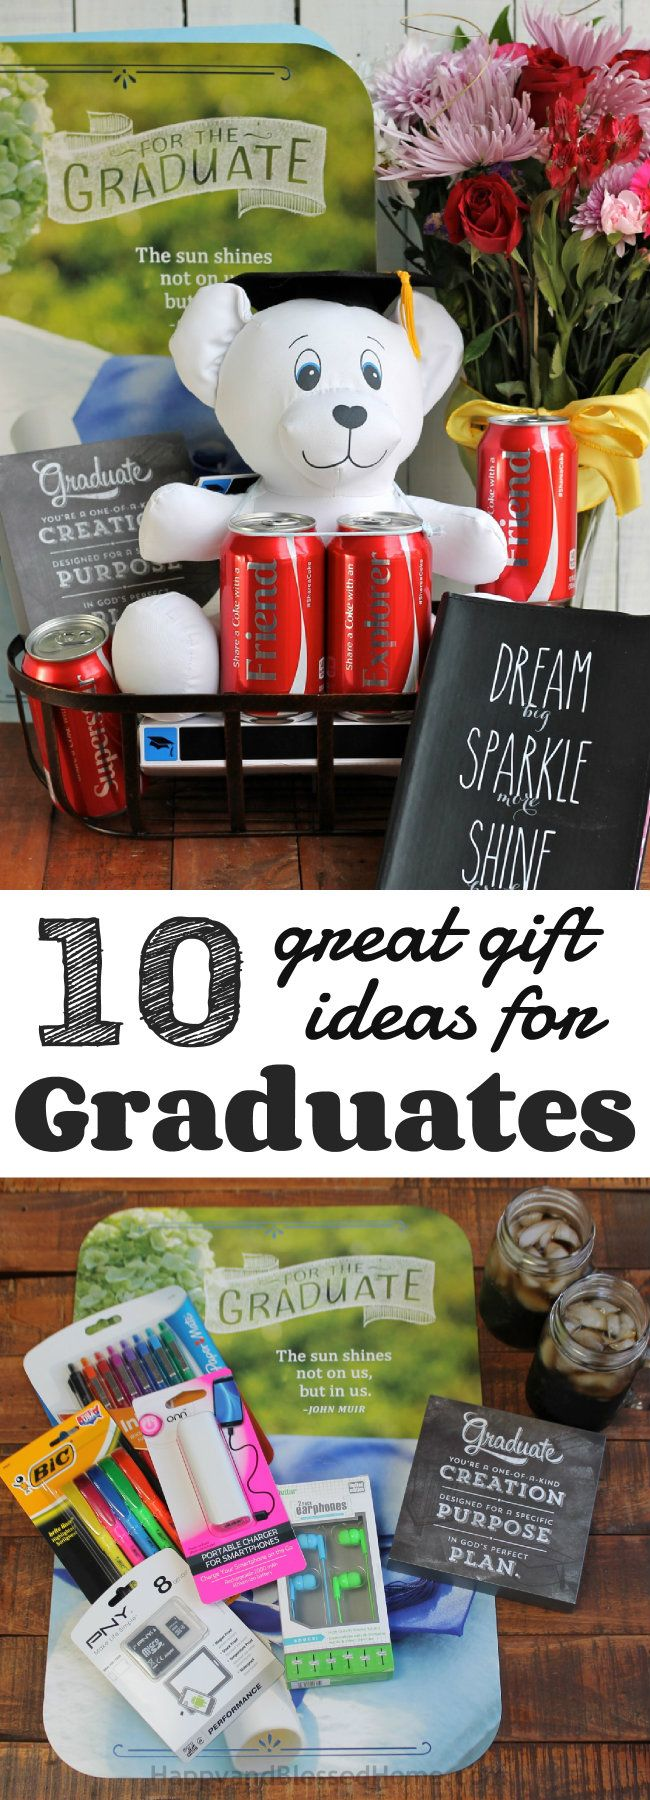 10 Great Gift Ideas for Graduates with inexpensive ideas for personalizing a graduation gift from HappyandBlessedHome.com